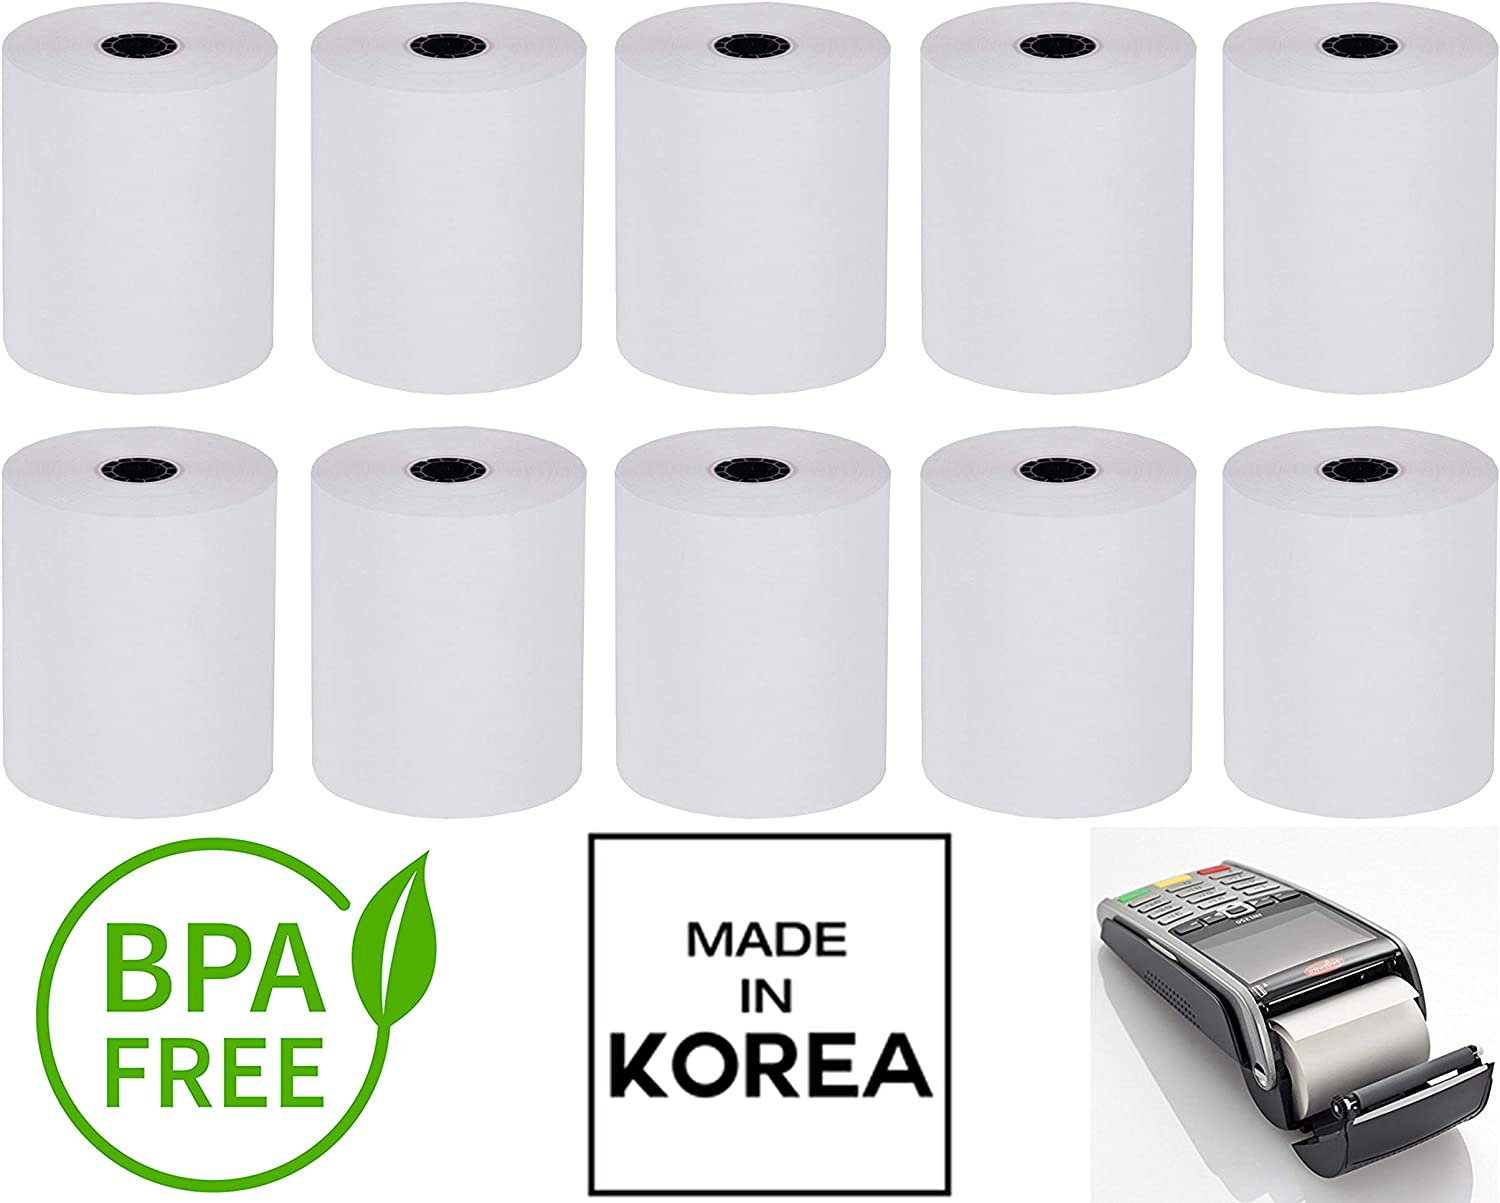 Made in South KOREA Individual Packed 2 1//4 x 50 Thermal Receipt Paper Credit Card Paper 10 Rolls Receipt Paper Supplies Compatible with Verifone Vx520 Vx670 Vx680 Ingenico iCT220 iCT250 FD400